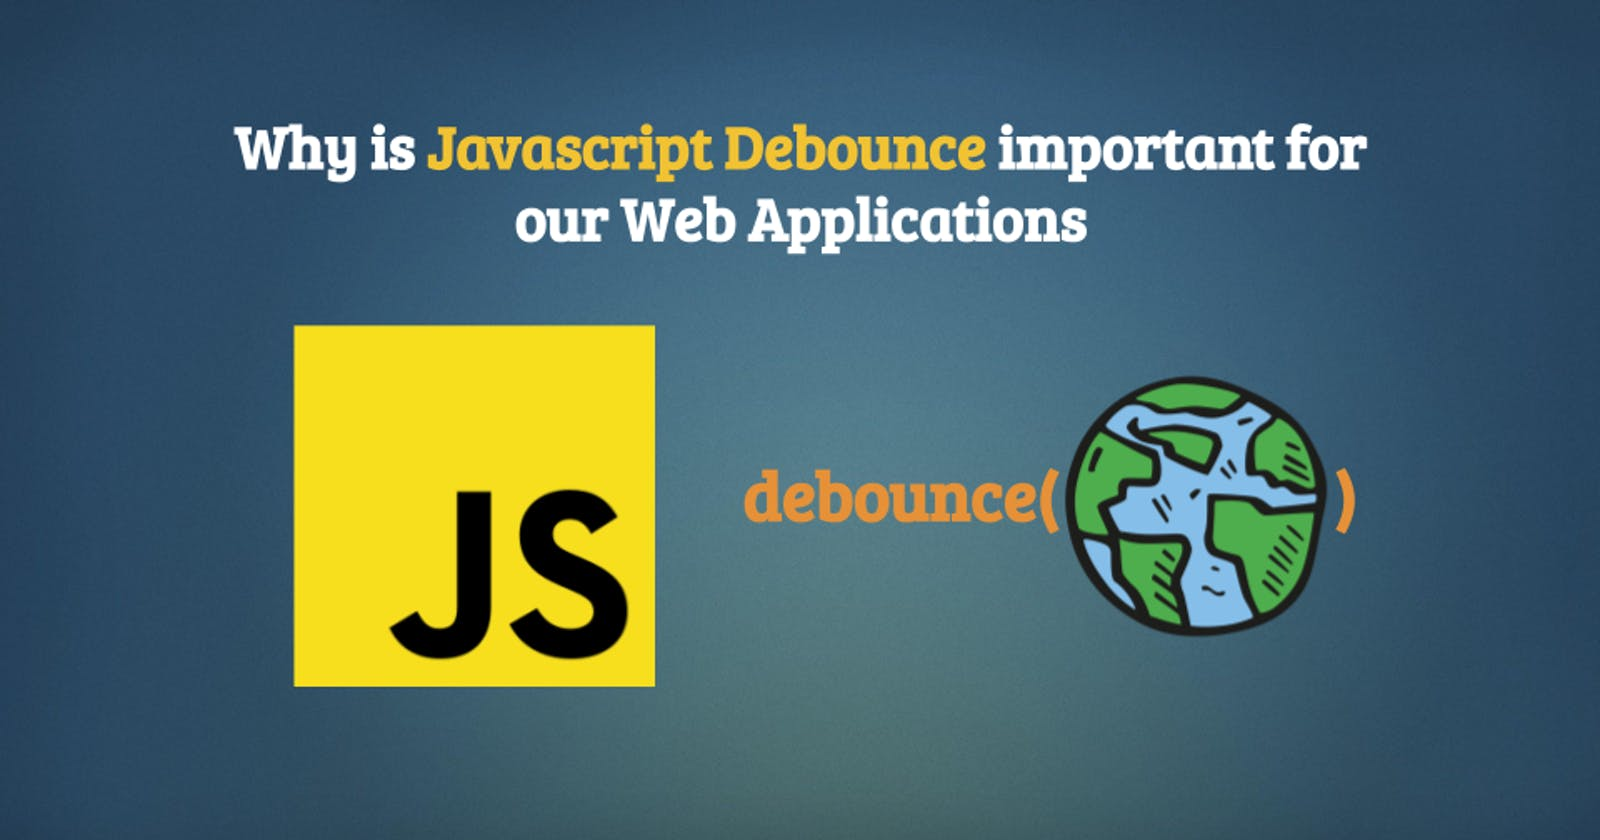 Why is Javascript Debounce important for our Web Applications